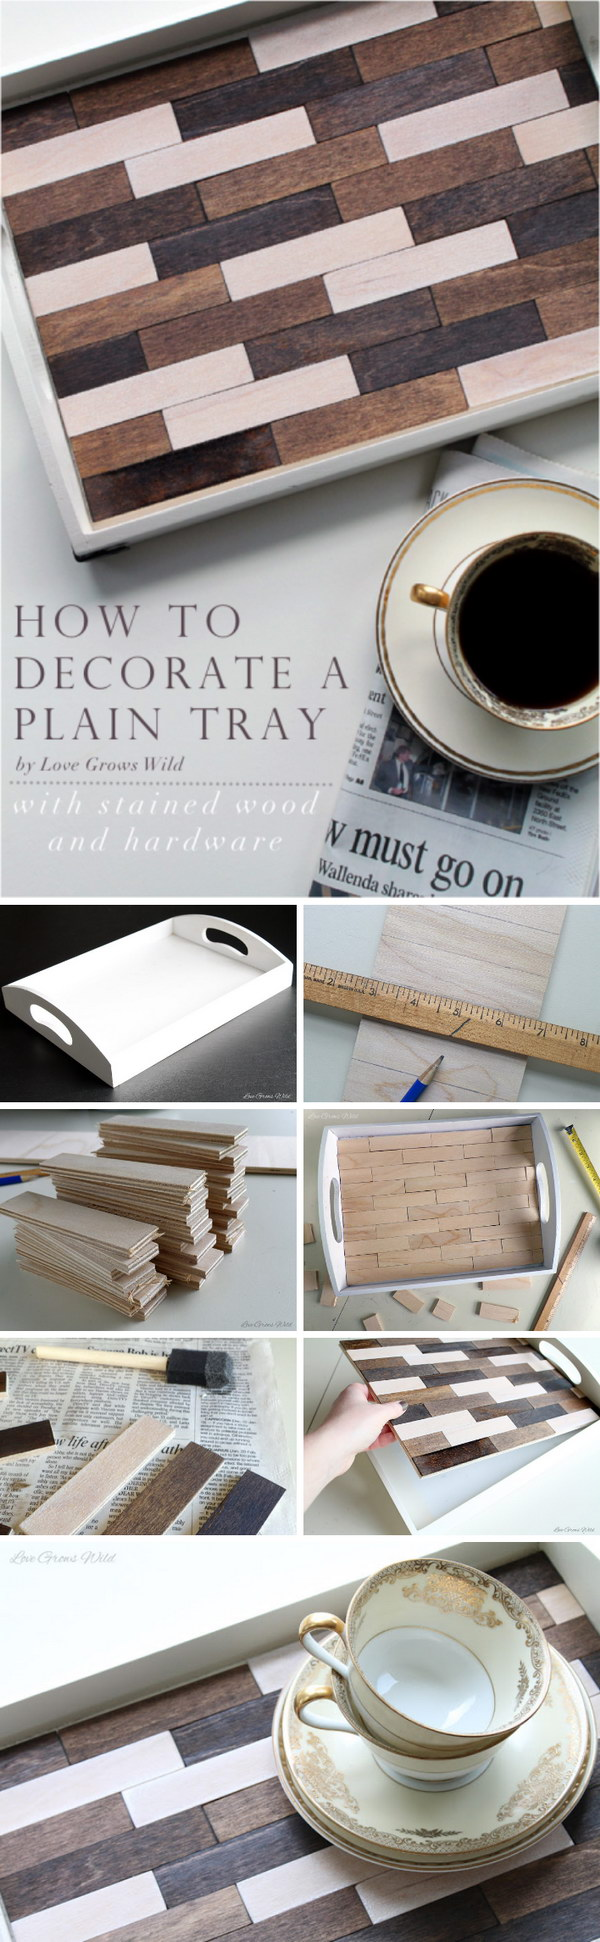 Wood Stained Decorative Tray Makeover.